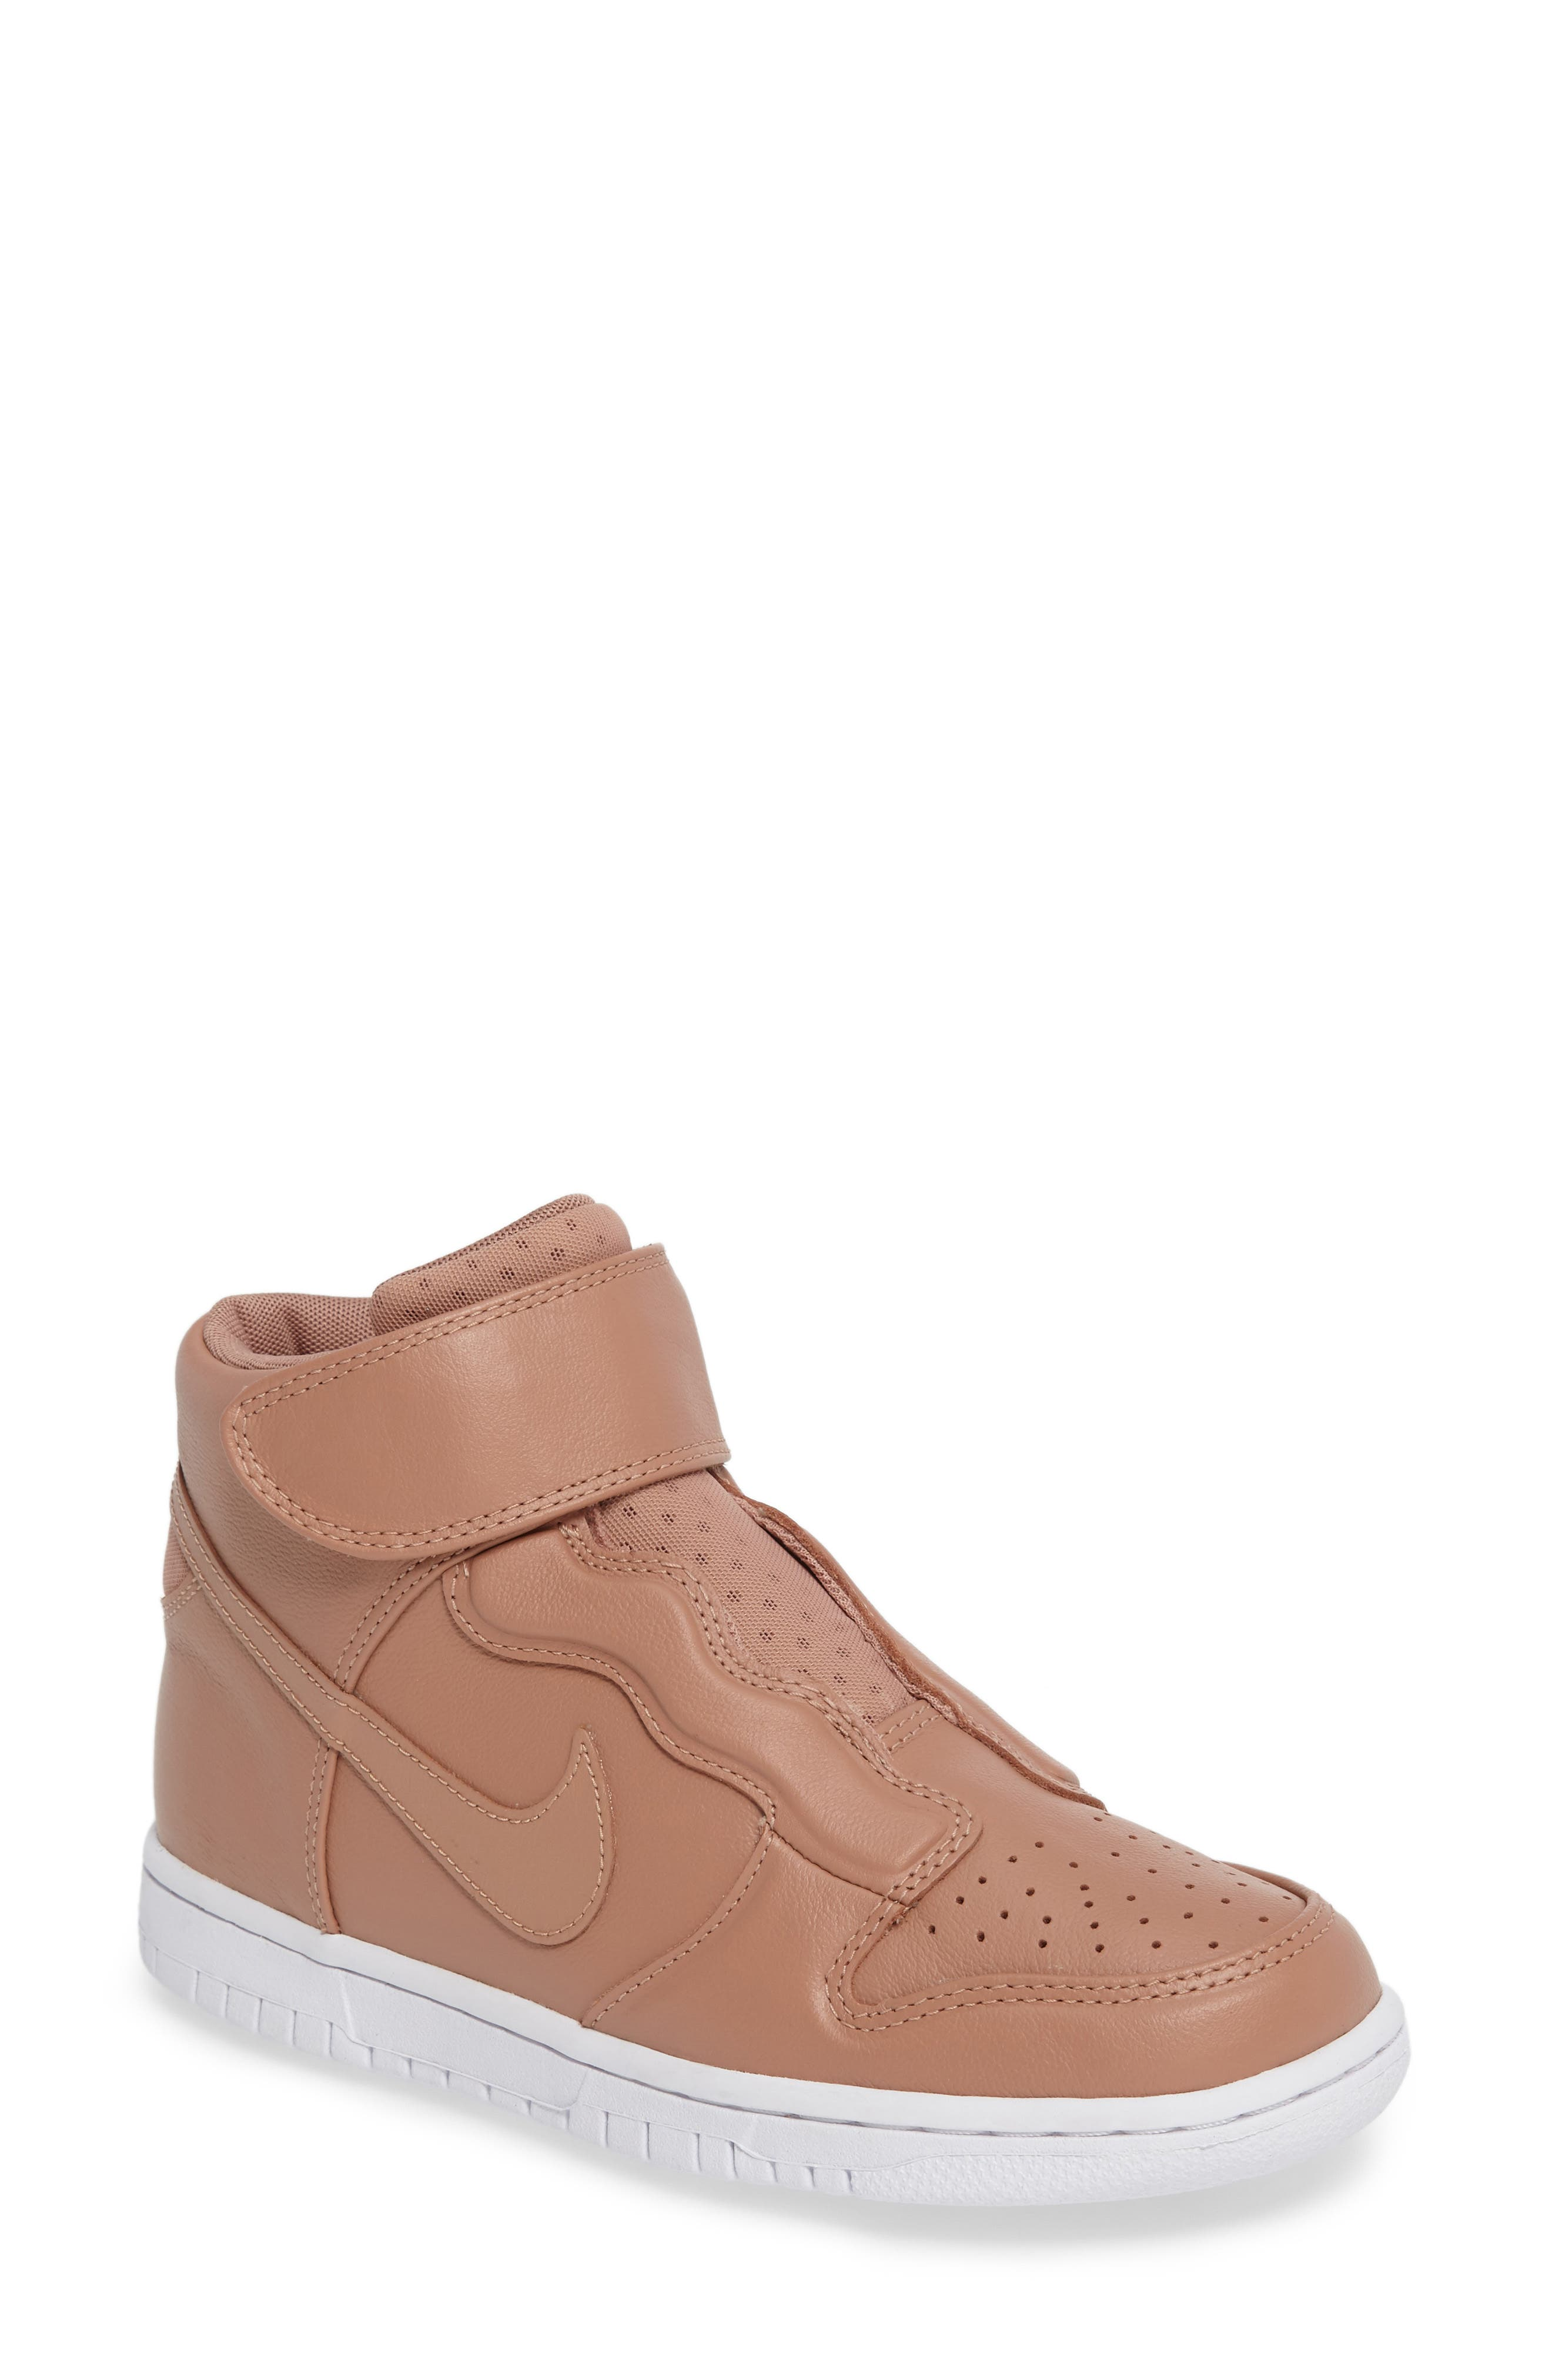 Nike Dunk Hi Ease Sneaker (Women)